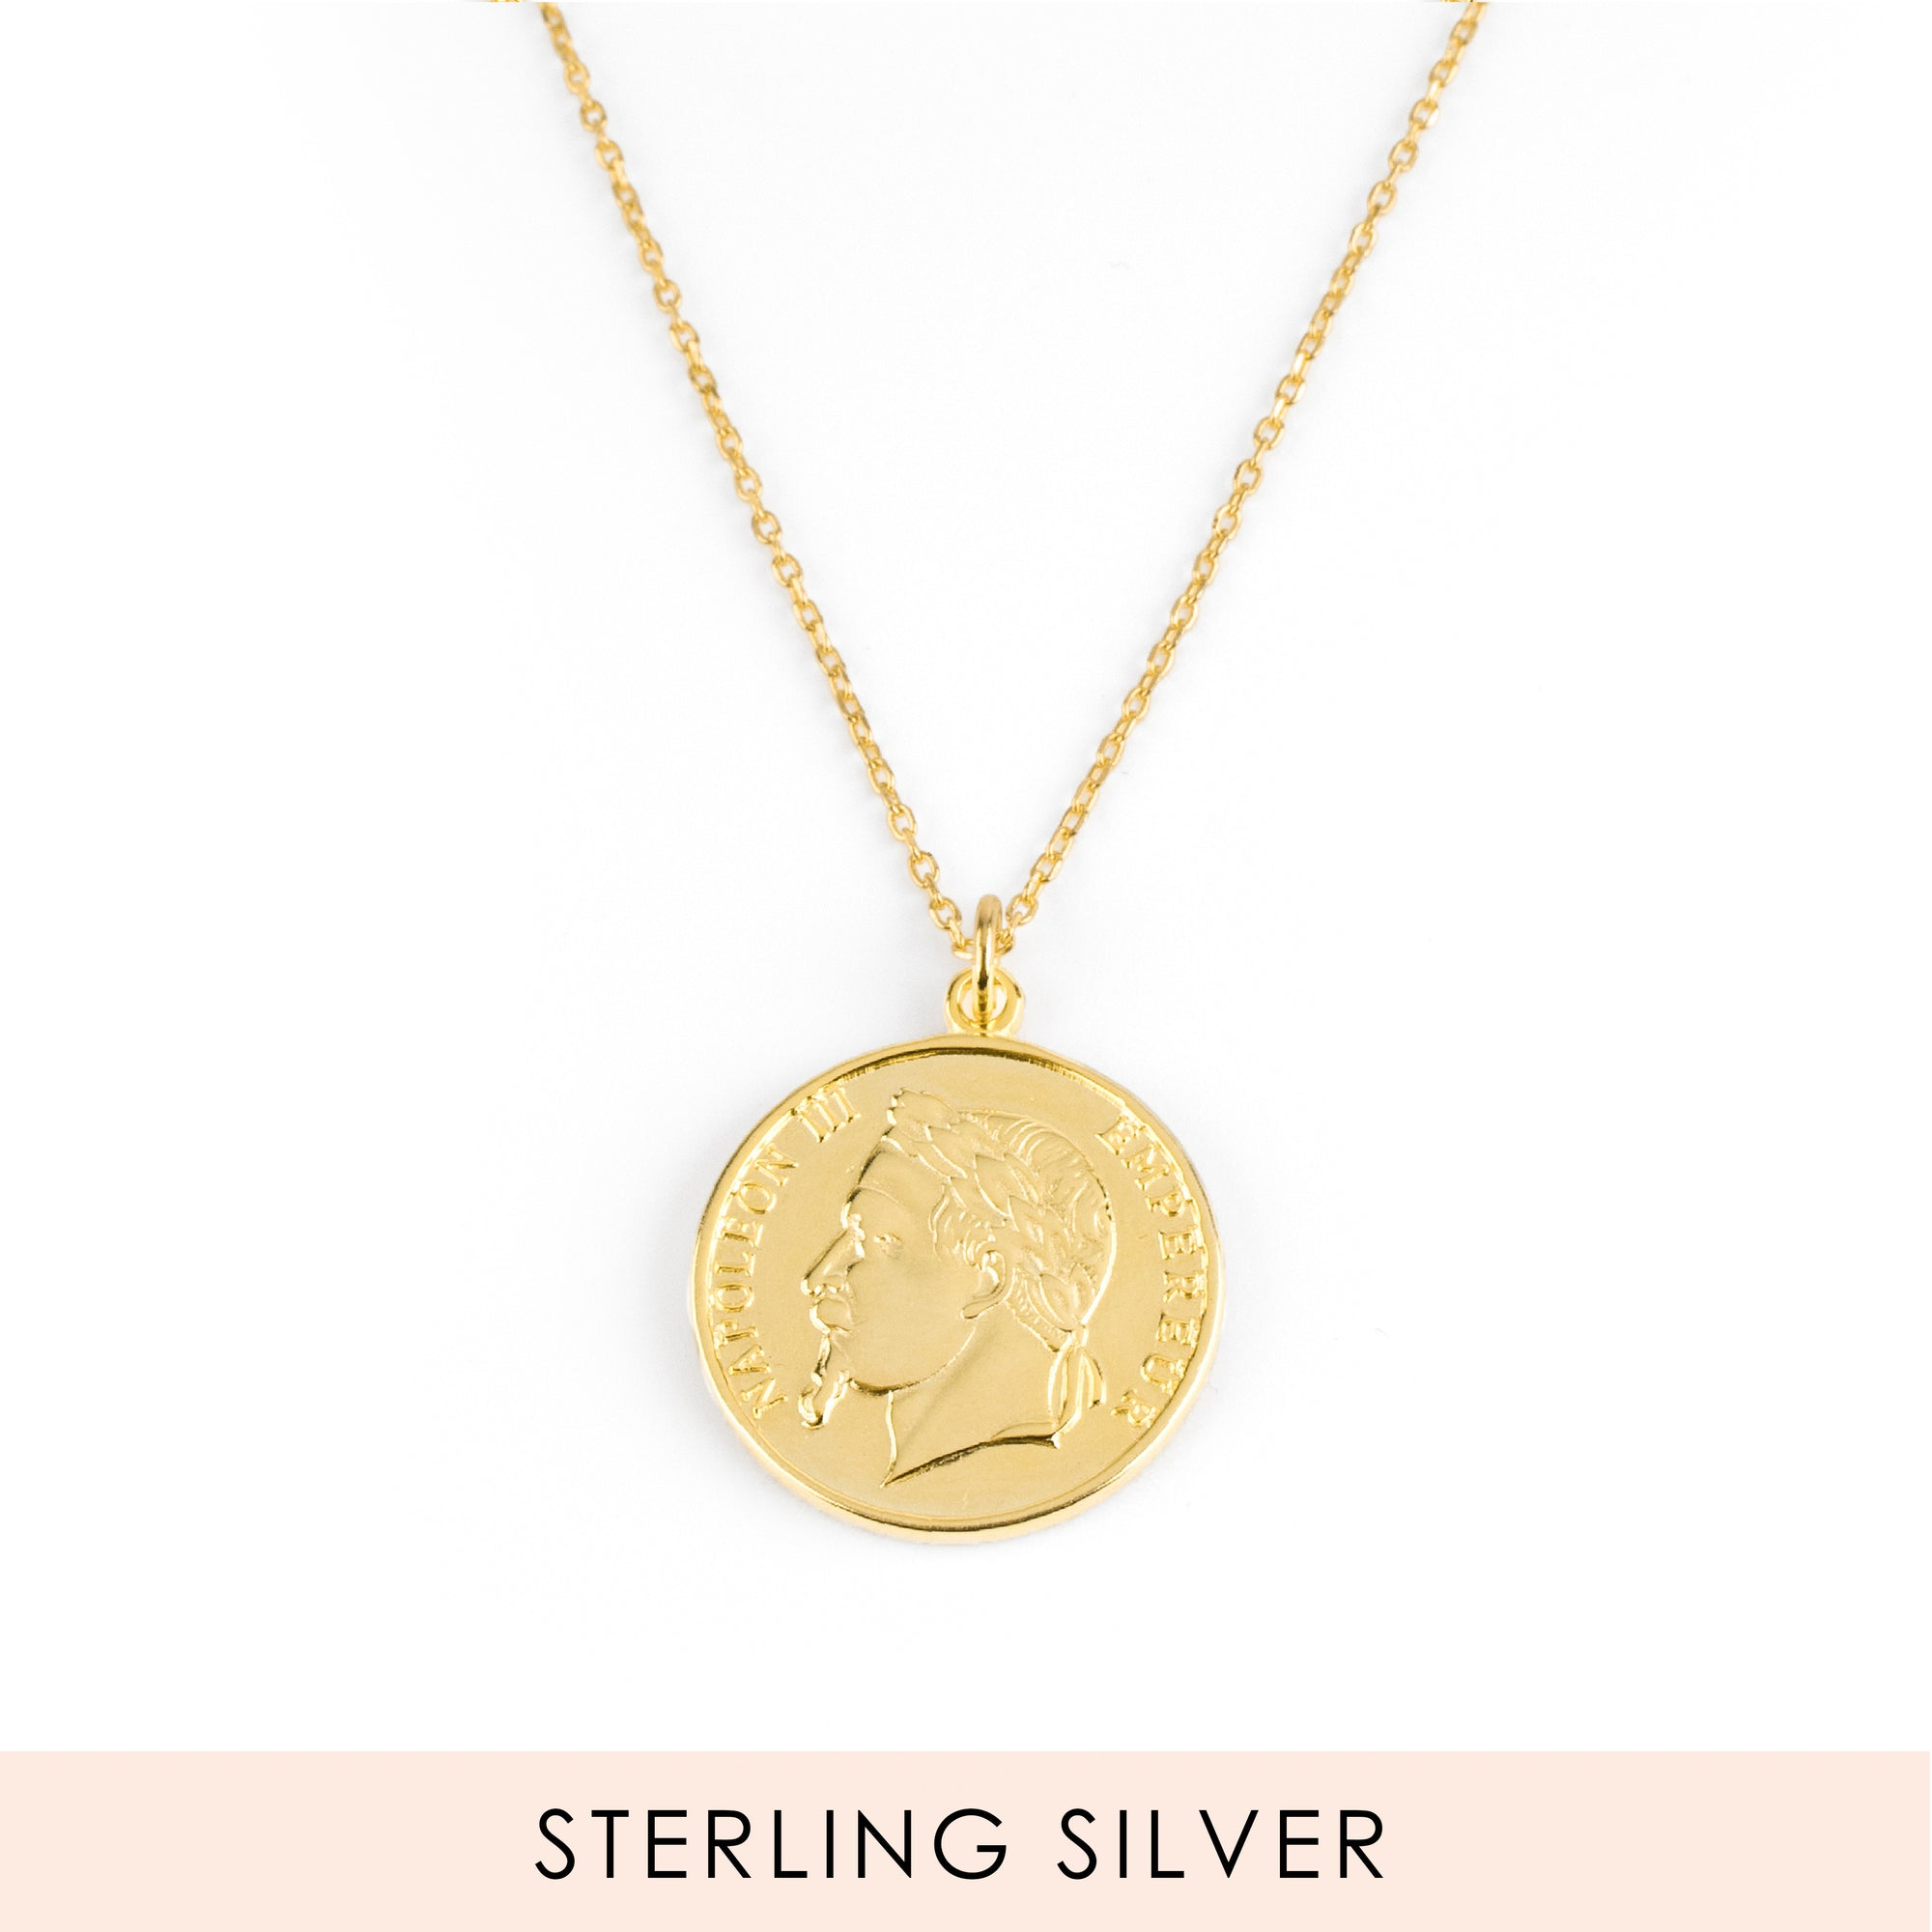 Napoleon Coin Gold Necklace SALE